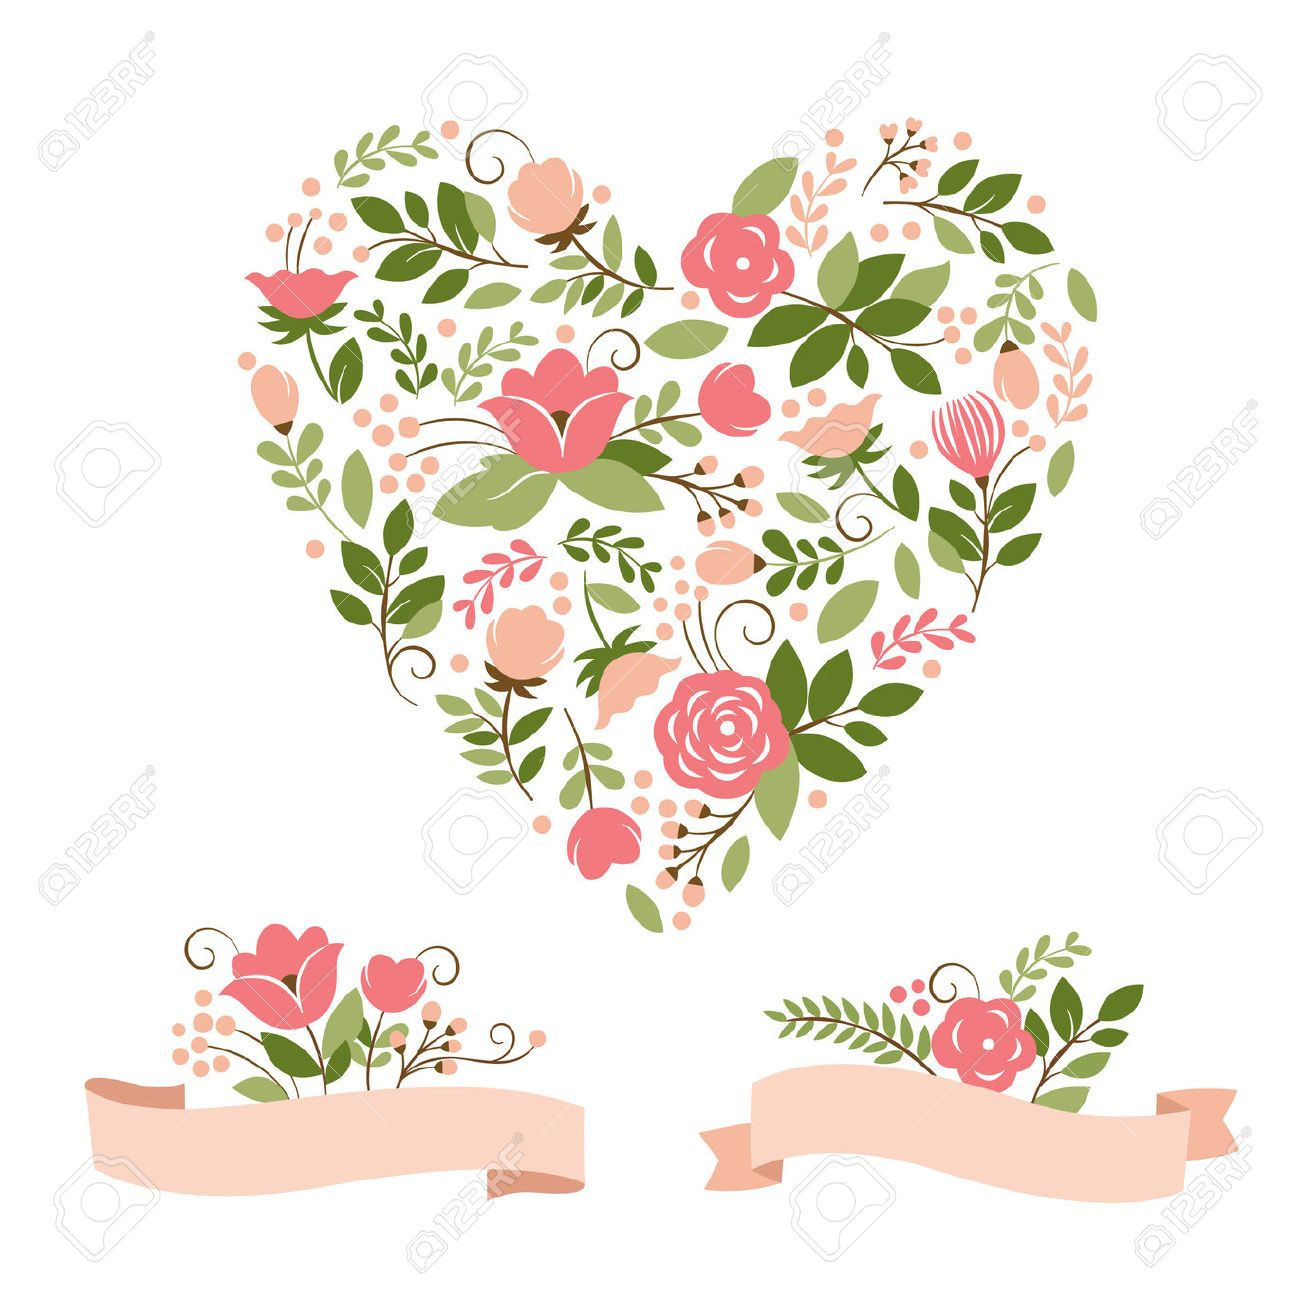 Heart stock illustration royalty free illustrations stock clip art - Floral Bouquets And Heart Royalty Free Cliparts Vectors And Stock Illustration Pic 22504590